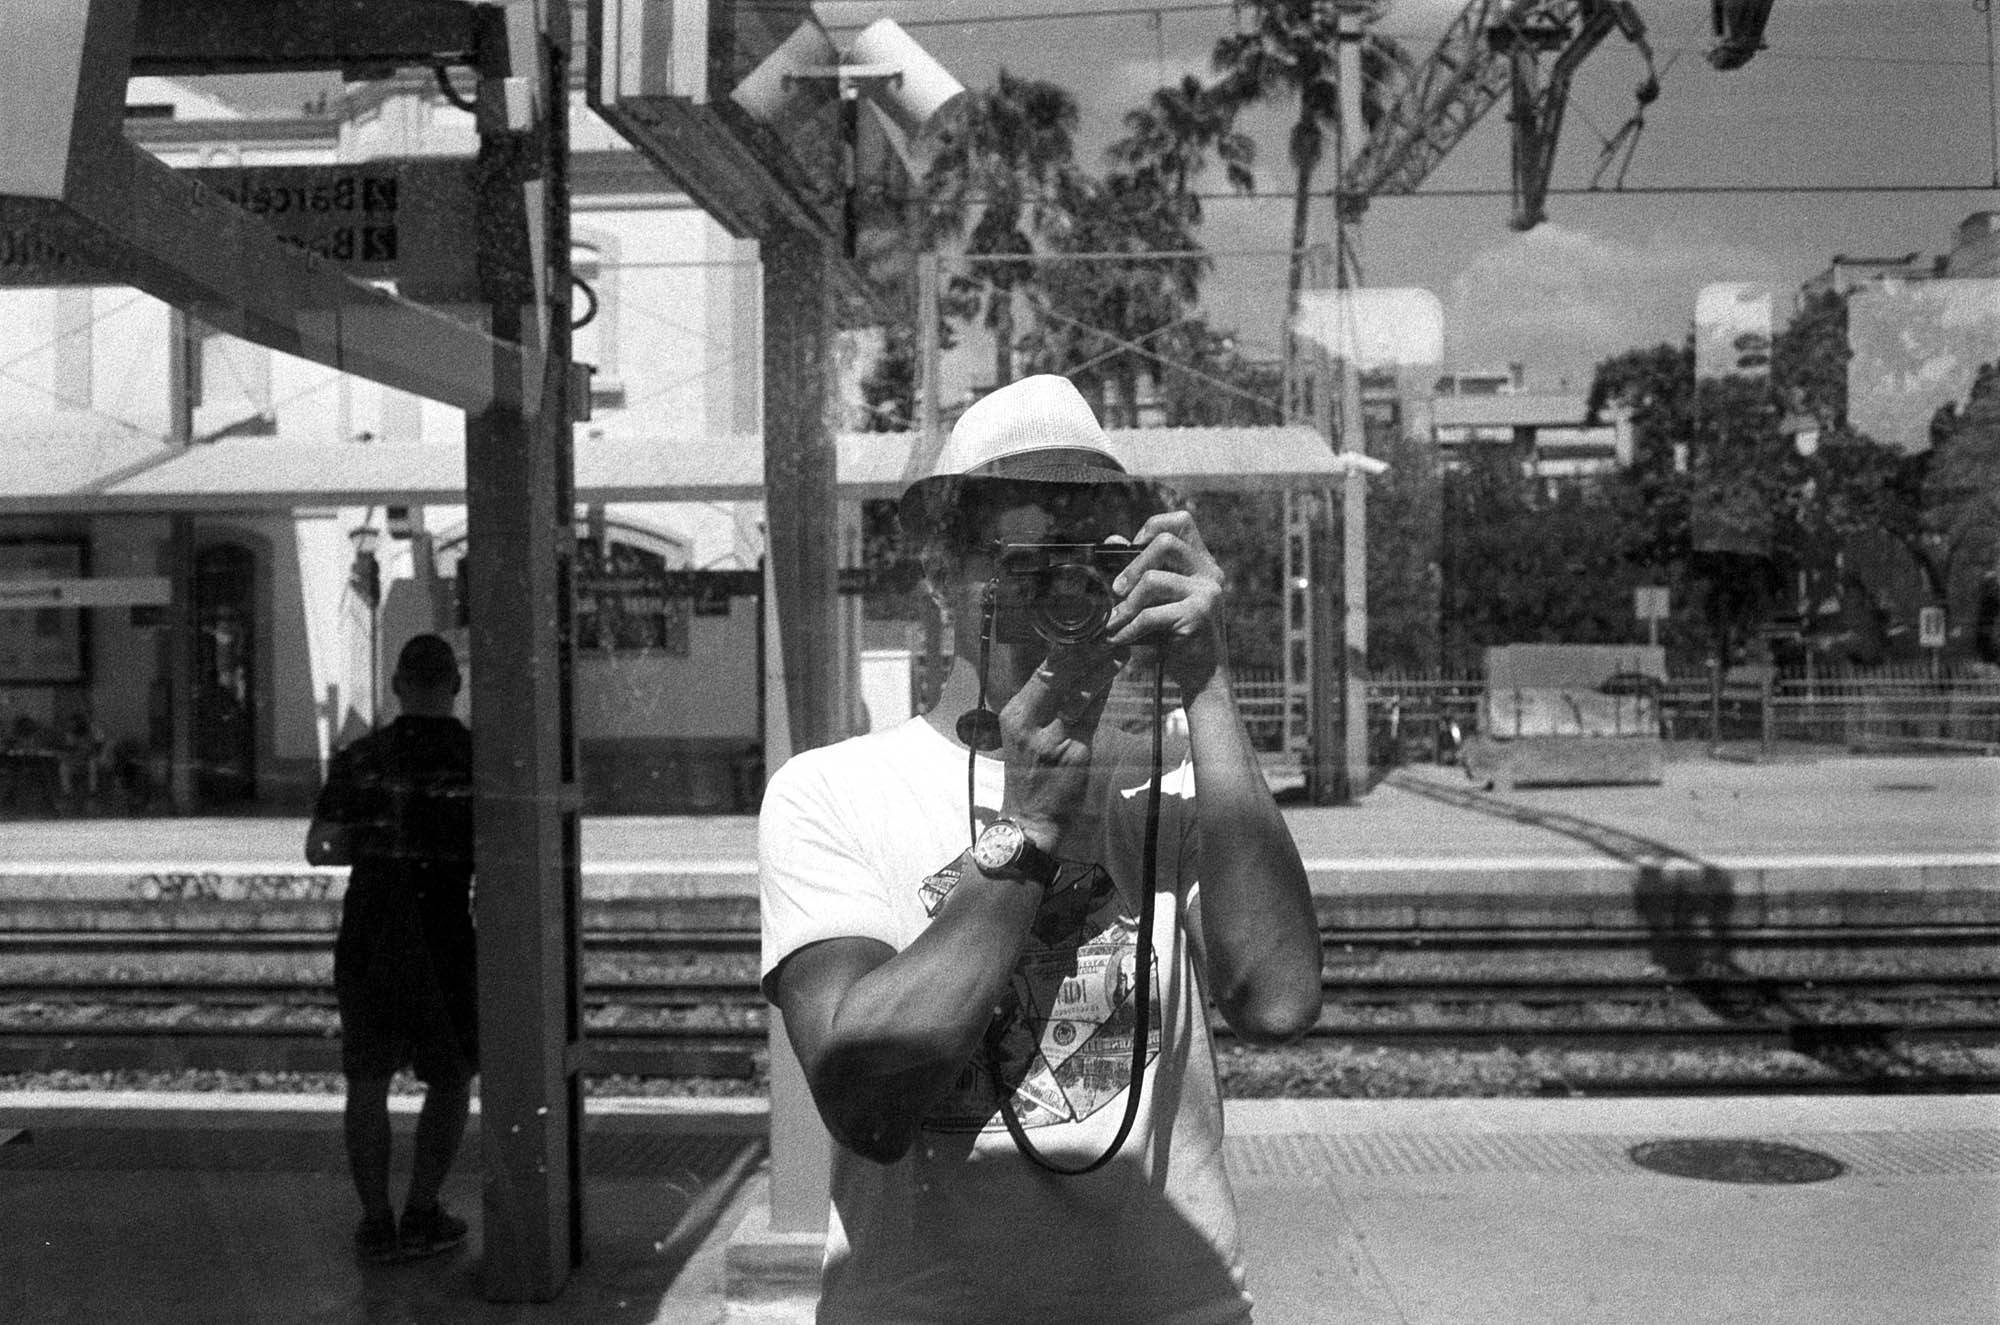 HP5+ in harsh light conditions